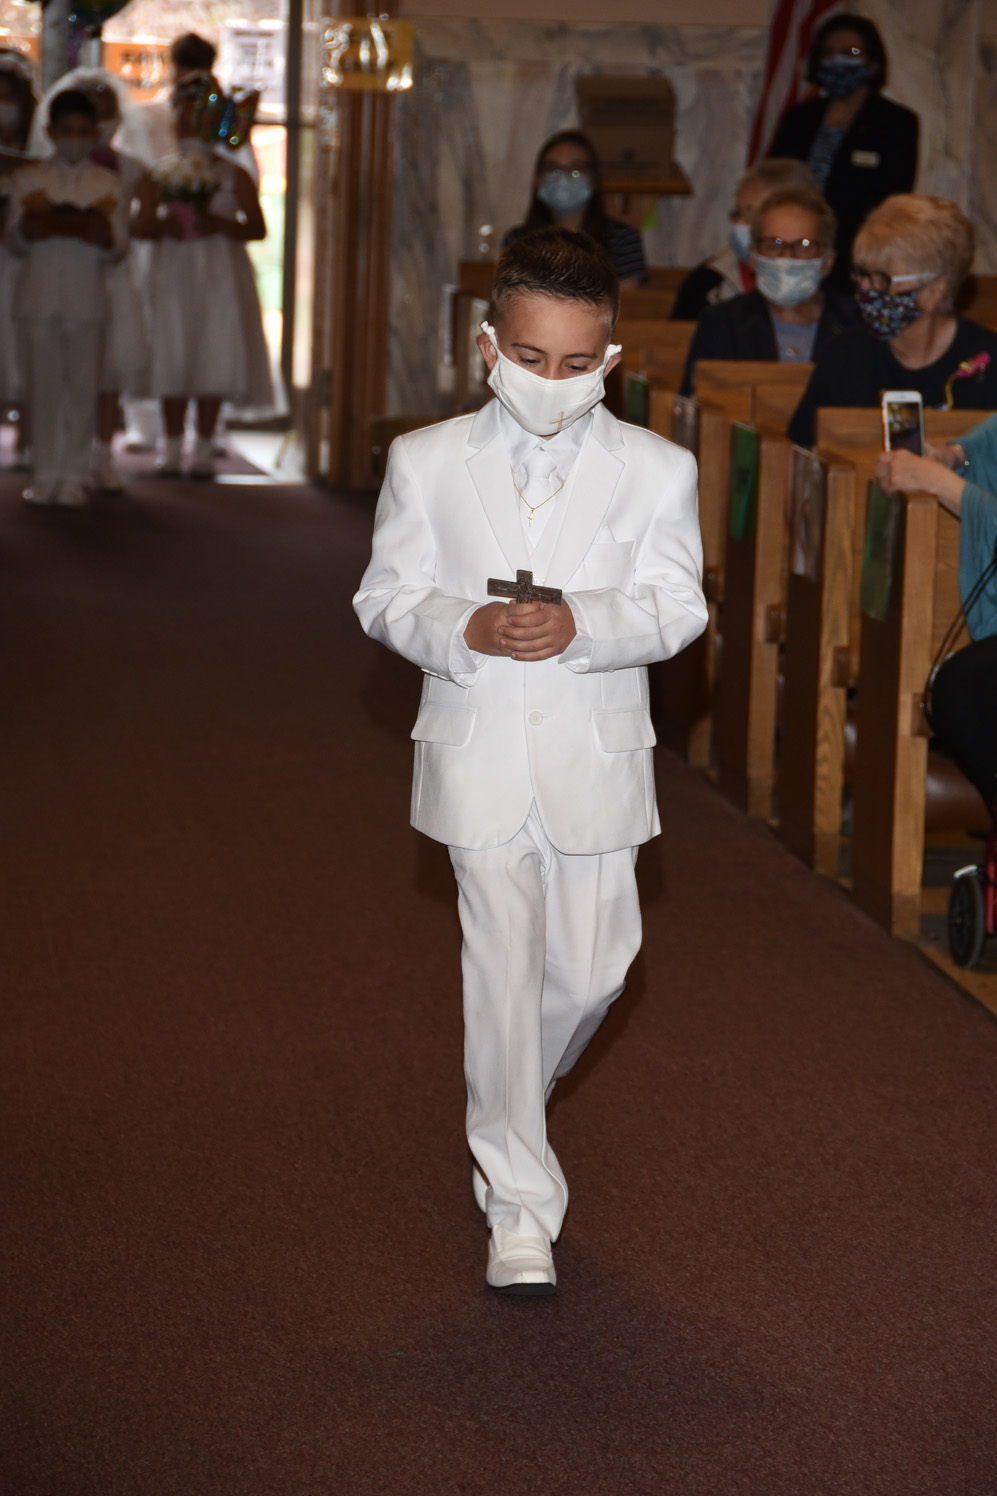 FIRST-COMMUNION-MAY-15-2021-10011086